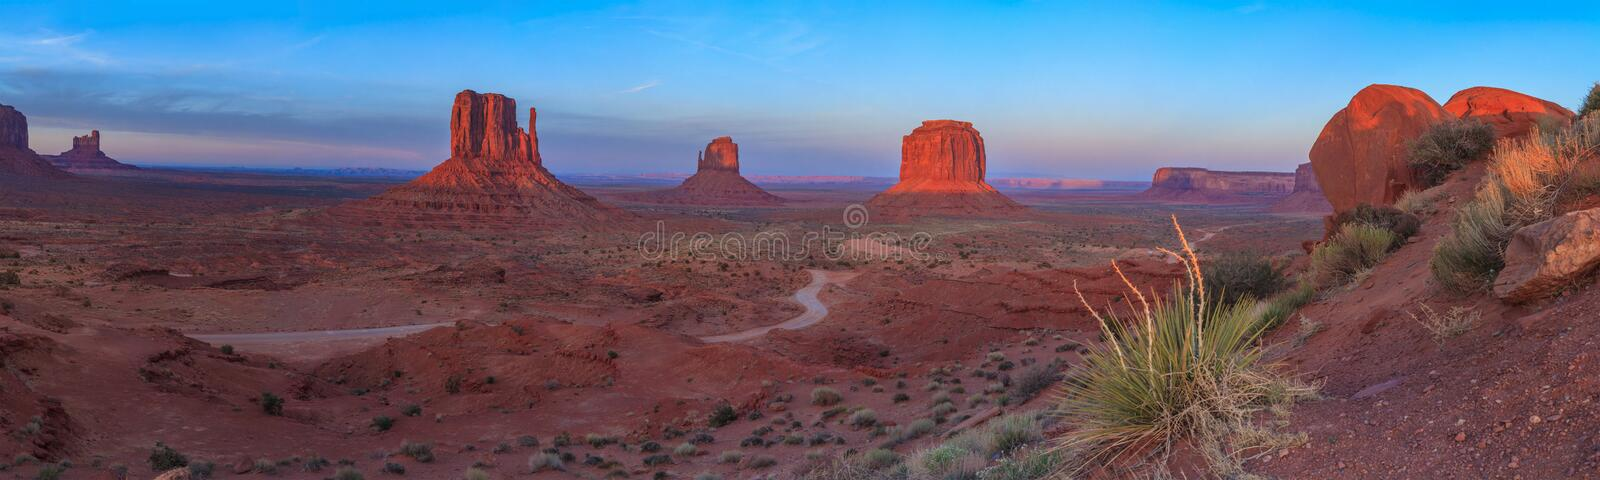 Monument Valley. Arches National Park,Utah,USA royalty free stock photos